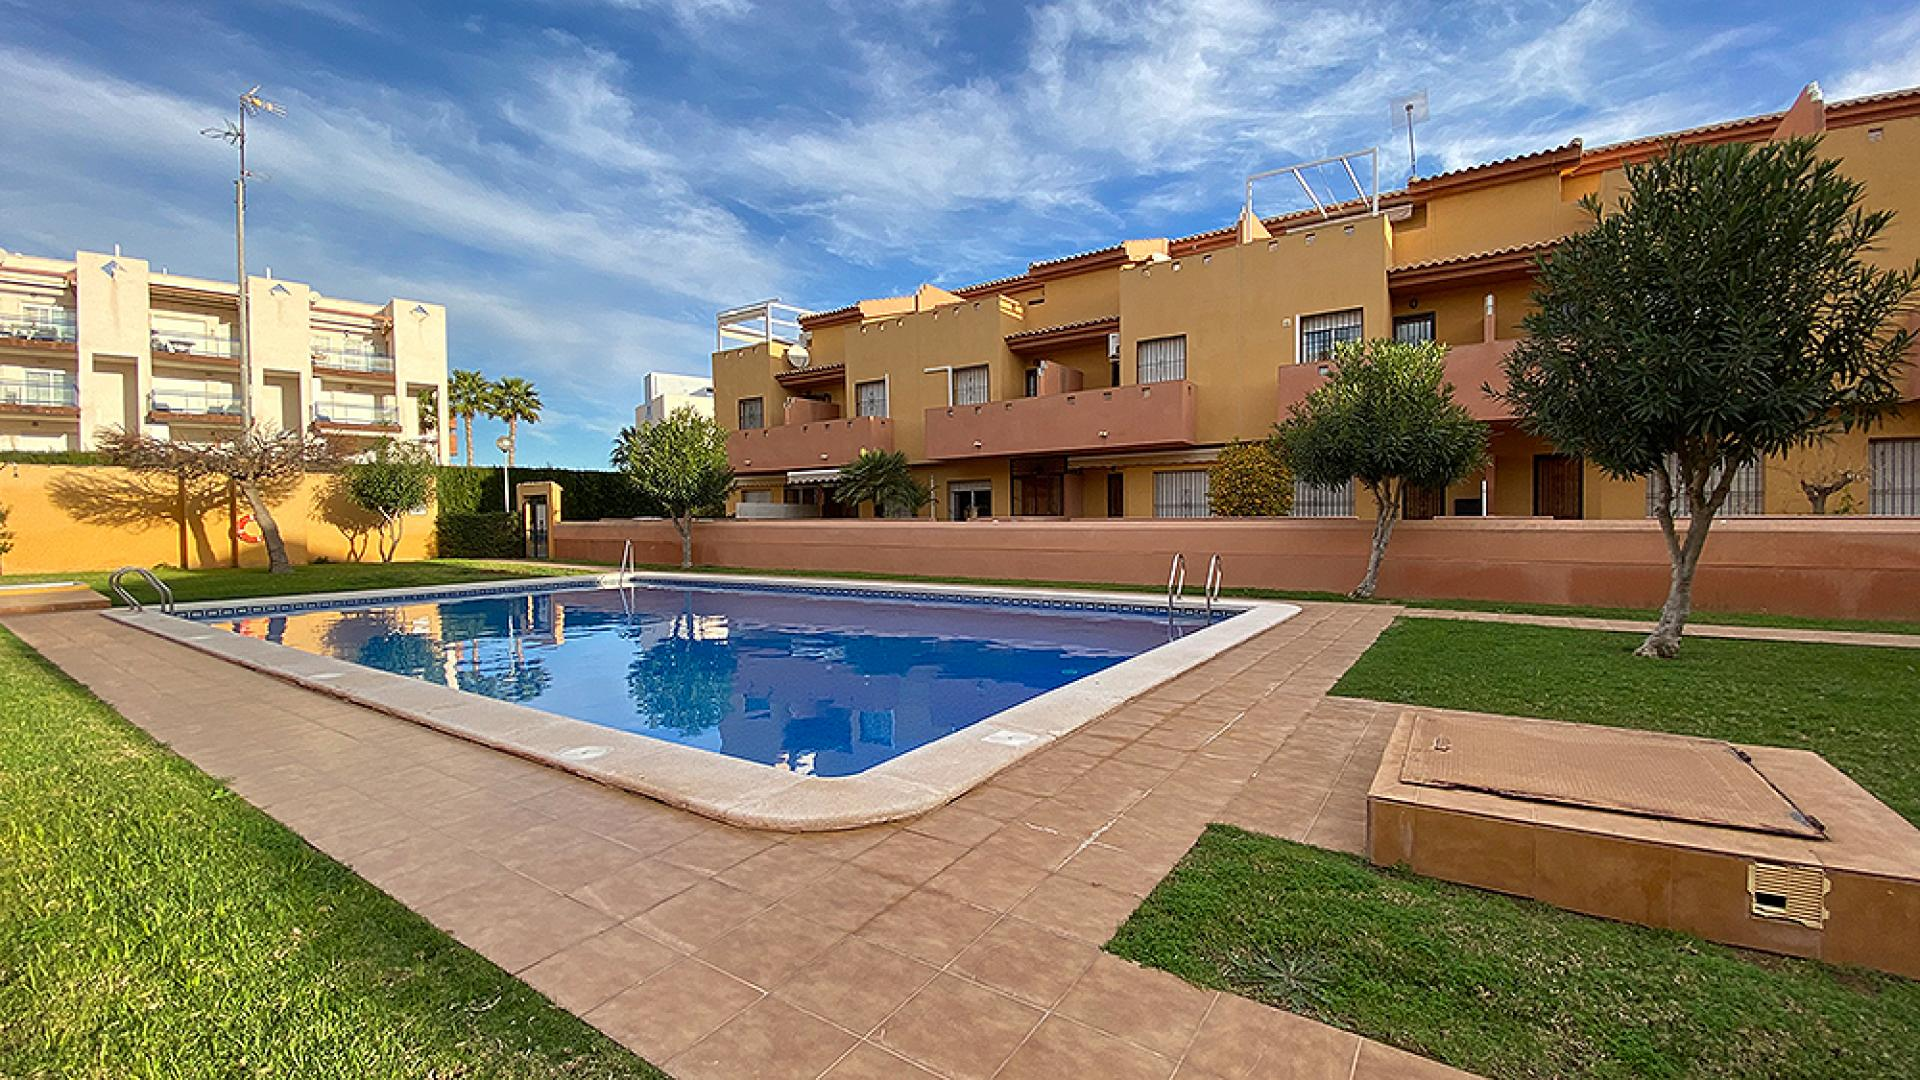 Townhouse in Alicante (Cabo Roig)